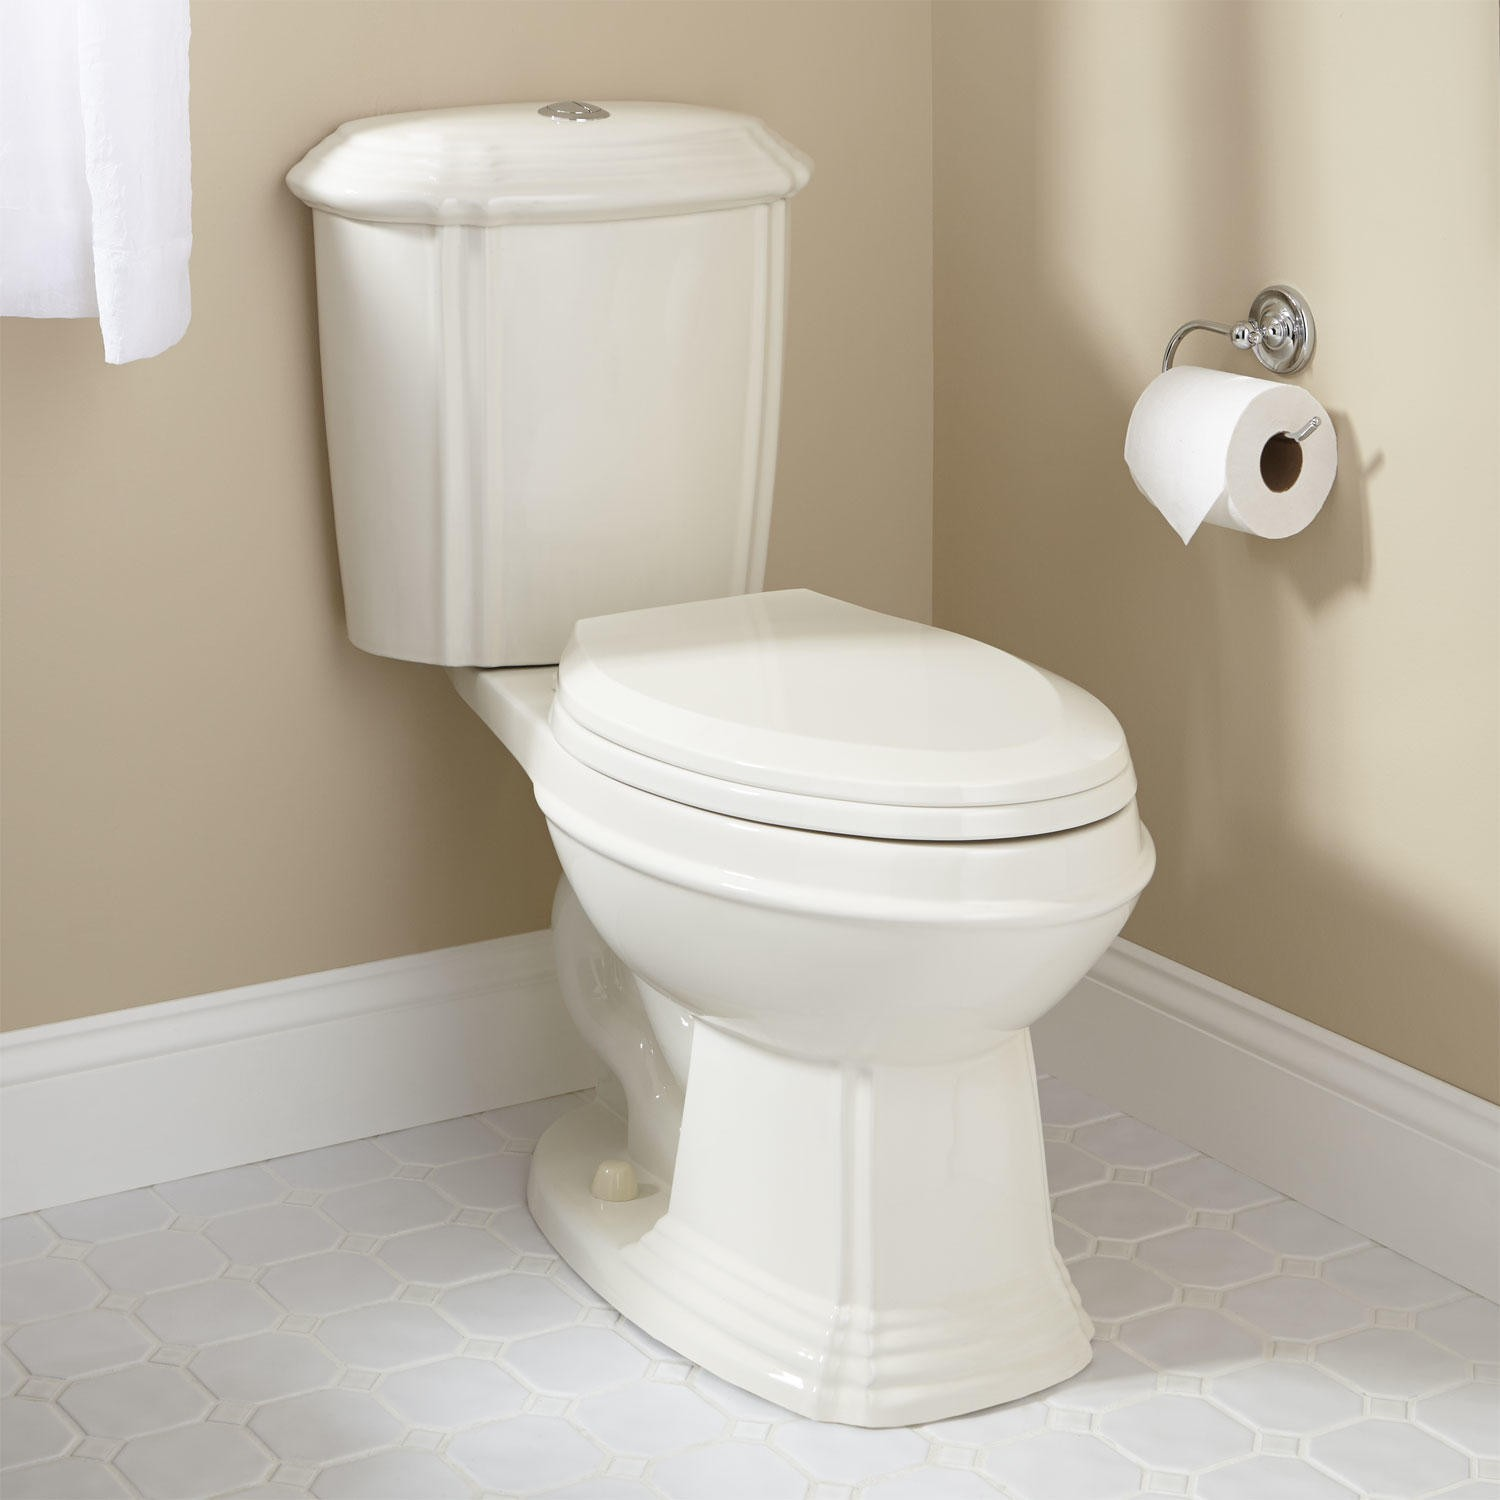 regent dual-flush water closet - biscuit elongated bowl FEMFZVO